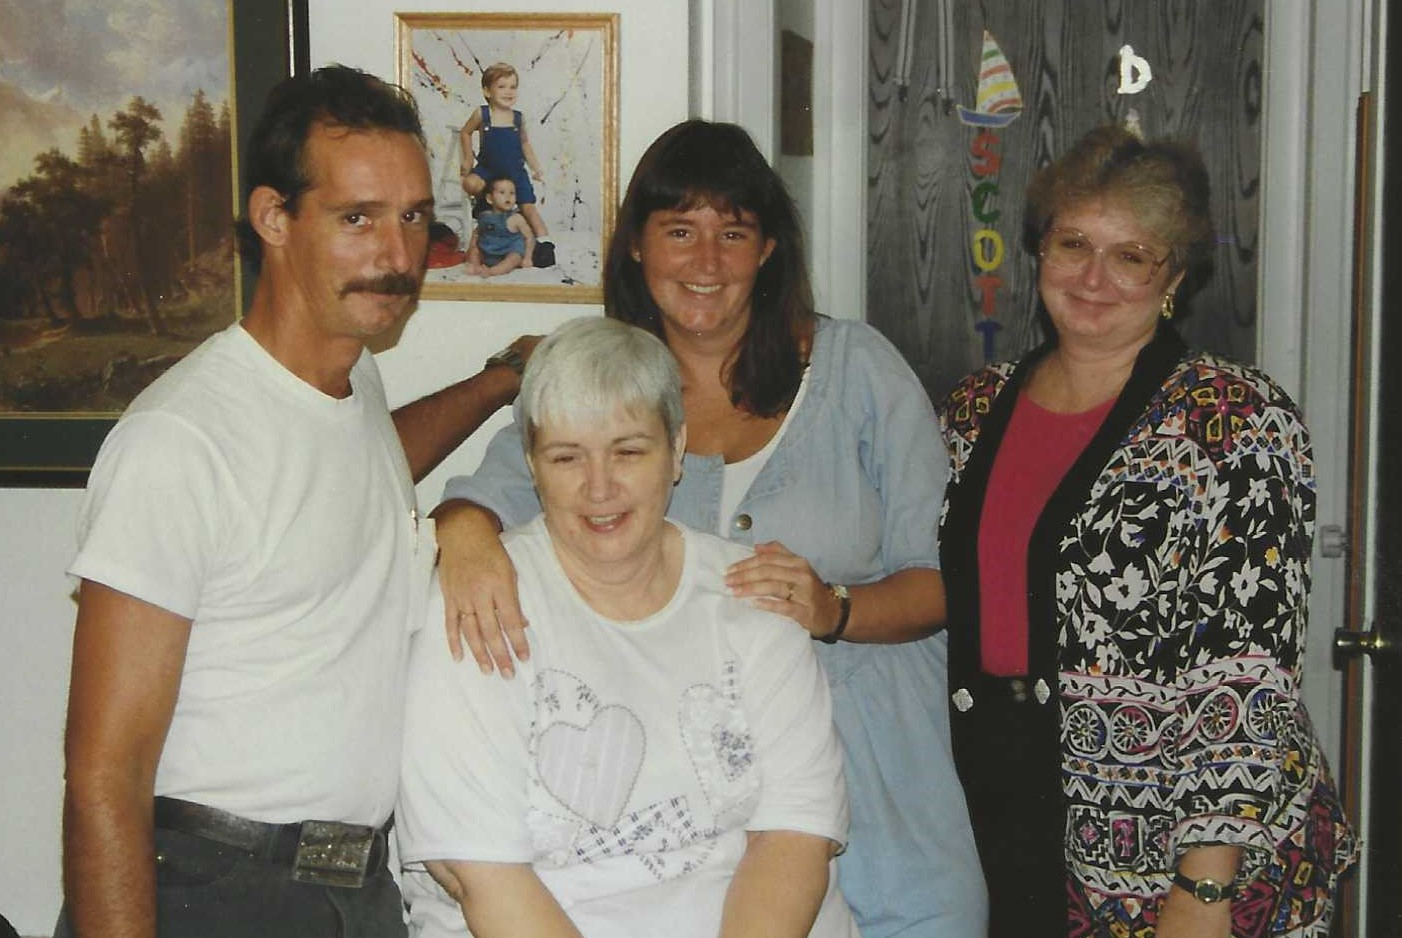 Linda with her children, Buddy, Donna and Wanda in 1996.